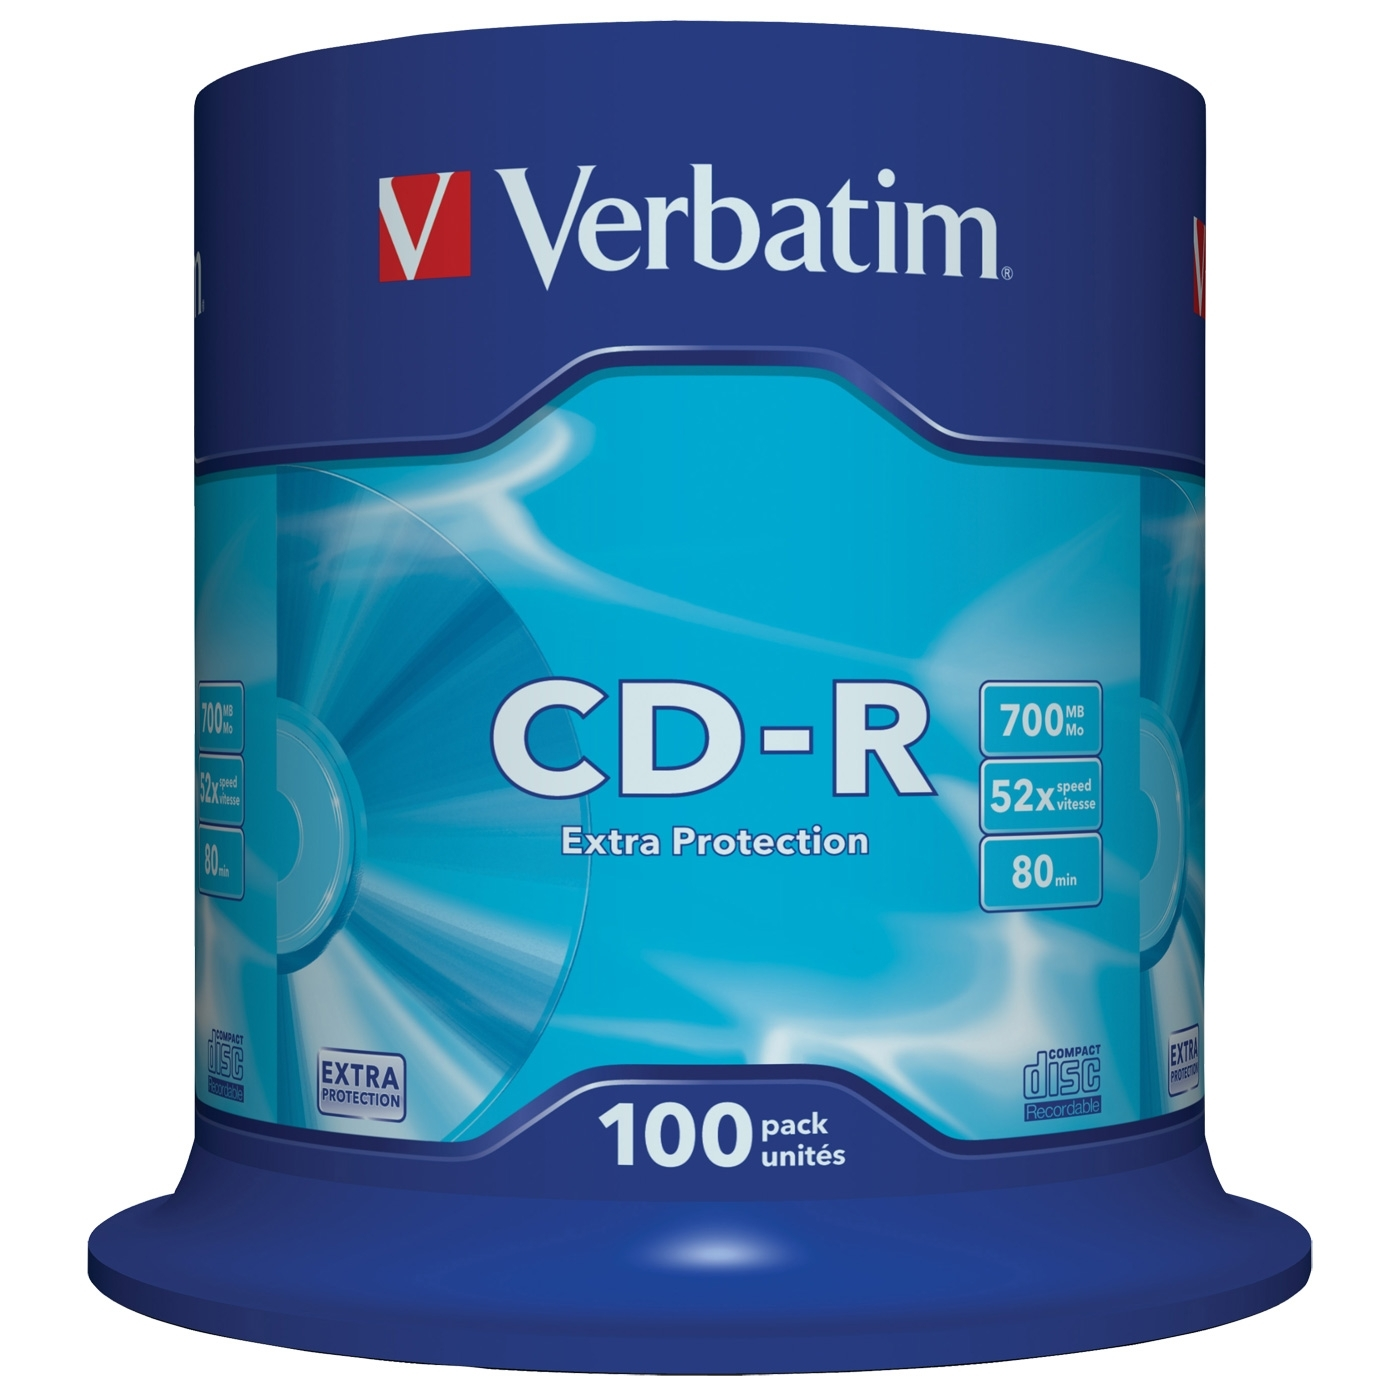 Диск CD-R Verbatim 700Mb 52x DataLife Cake Box, 100 шт (43411) диски cd r 80min 700mb verbatim 52x 100 шт cake box 43411